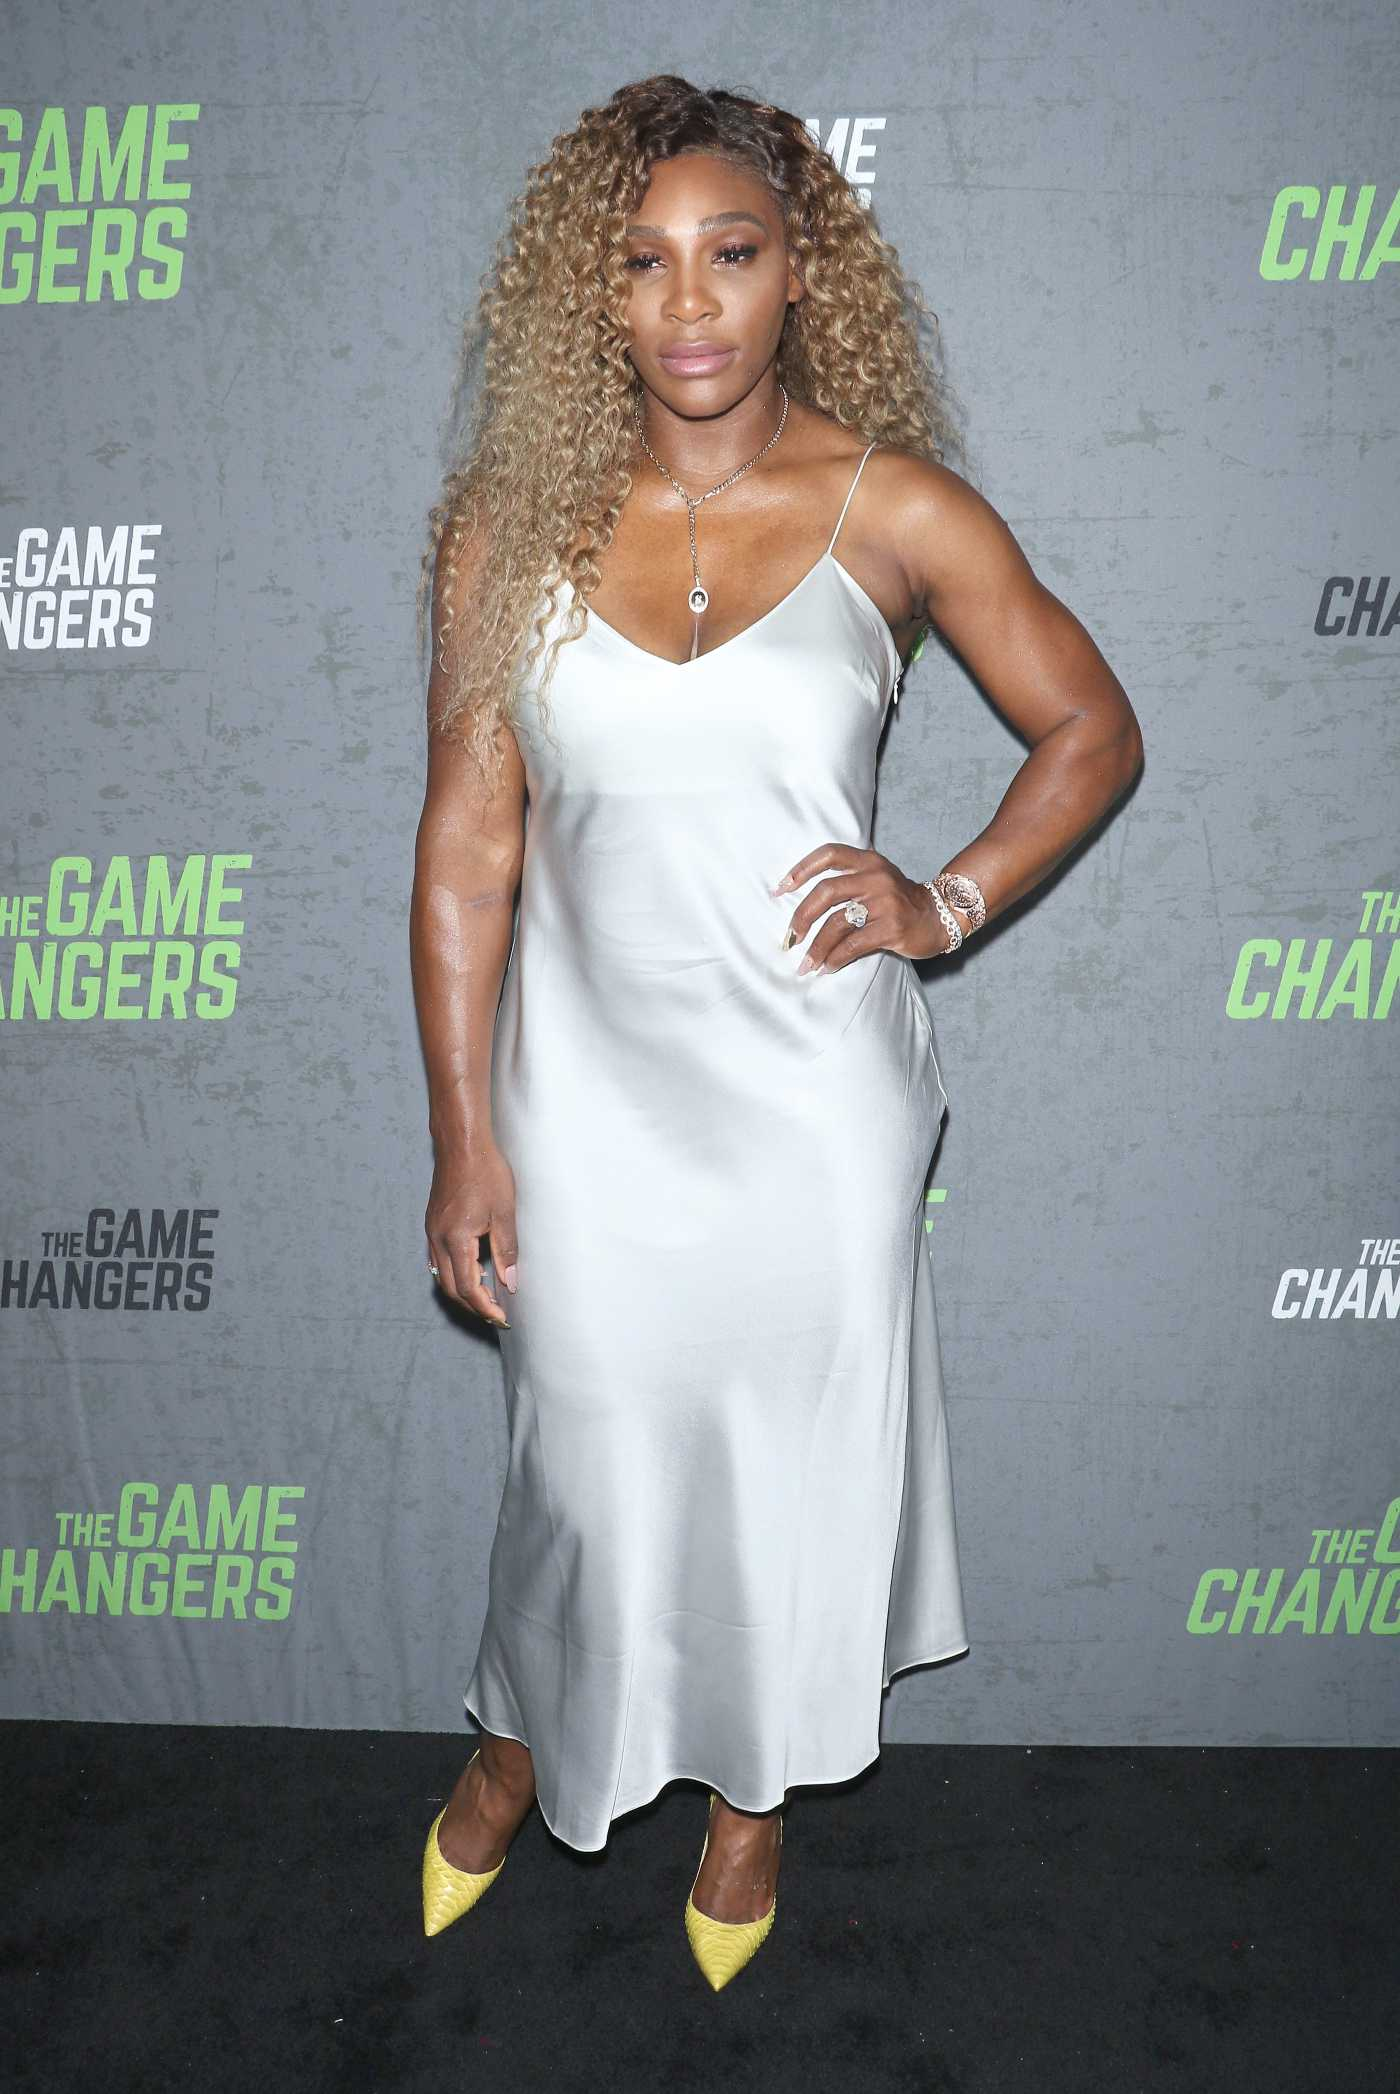 Serena Williams Attends The Game Changers Premiere in NYC 09/09/2019